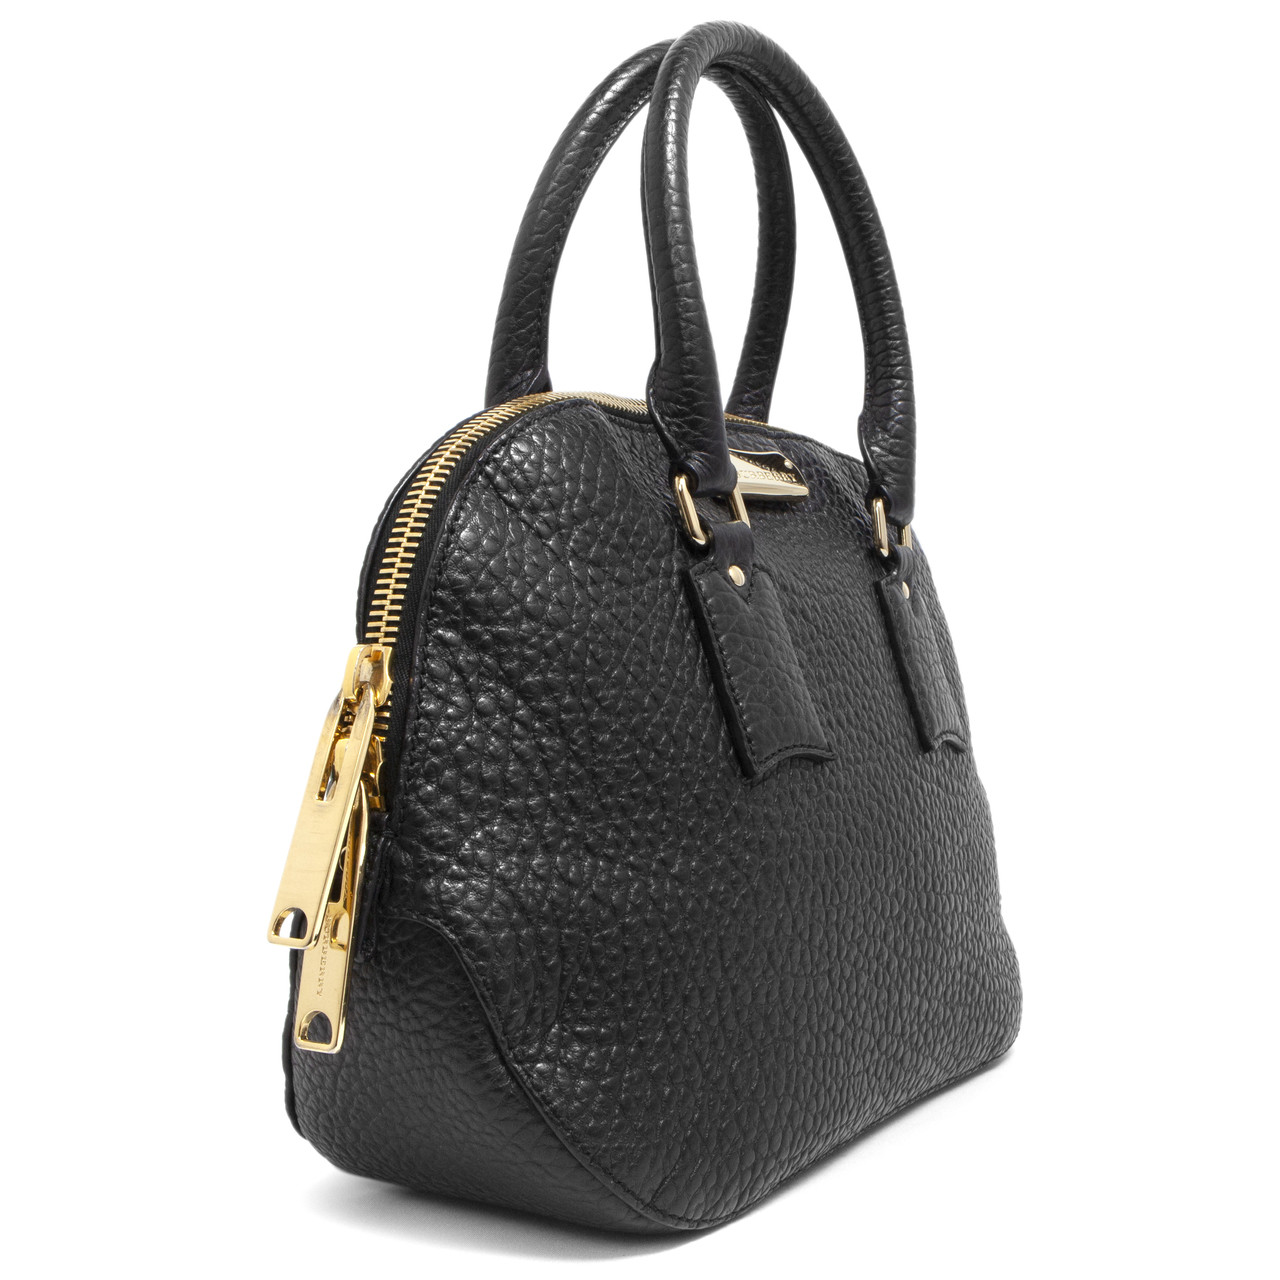 e058d0a39eb7 Burberry Black Heritage Grain Leather Small Orchard Bowling Bag ...